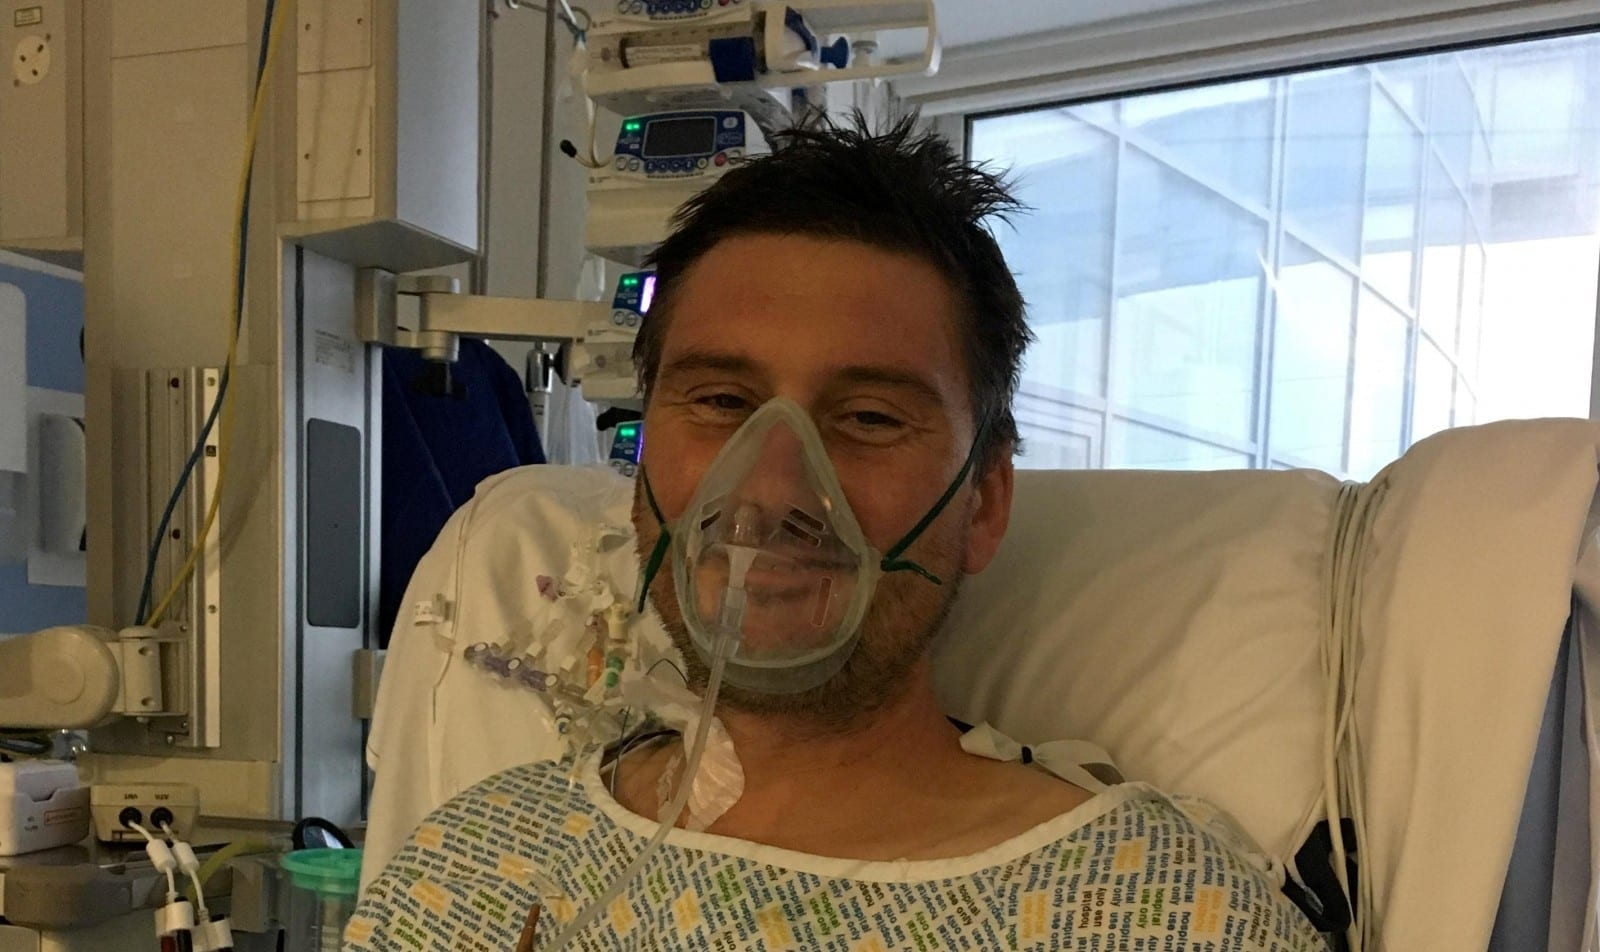 'I Wasn't Far Off Death's Door' –  Firefighter Needed Open Heart Surgery After Getting POPCORN Stuck In His Teeth Which Led To Life-Threatening Infection